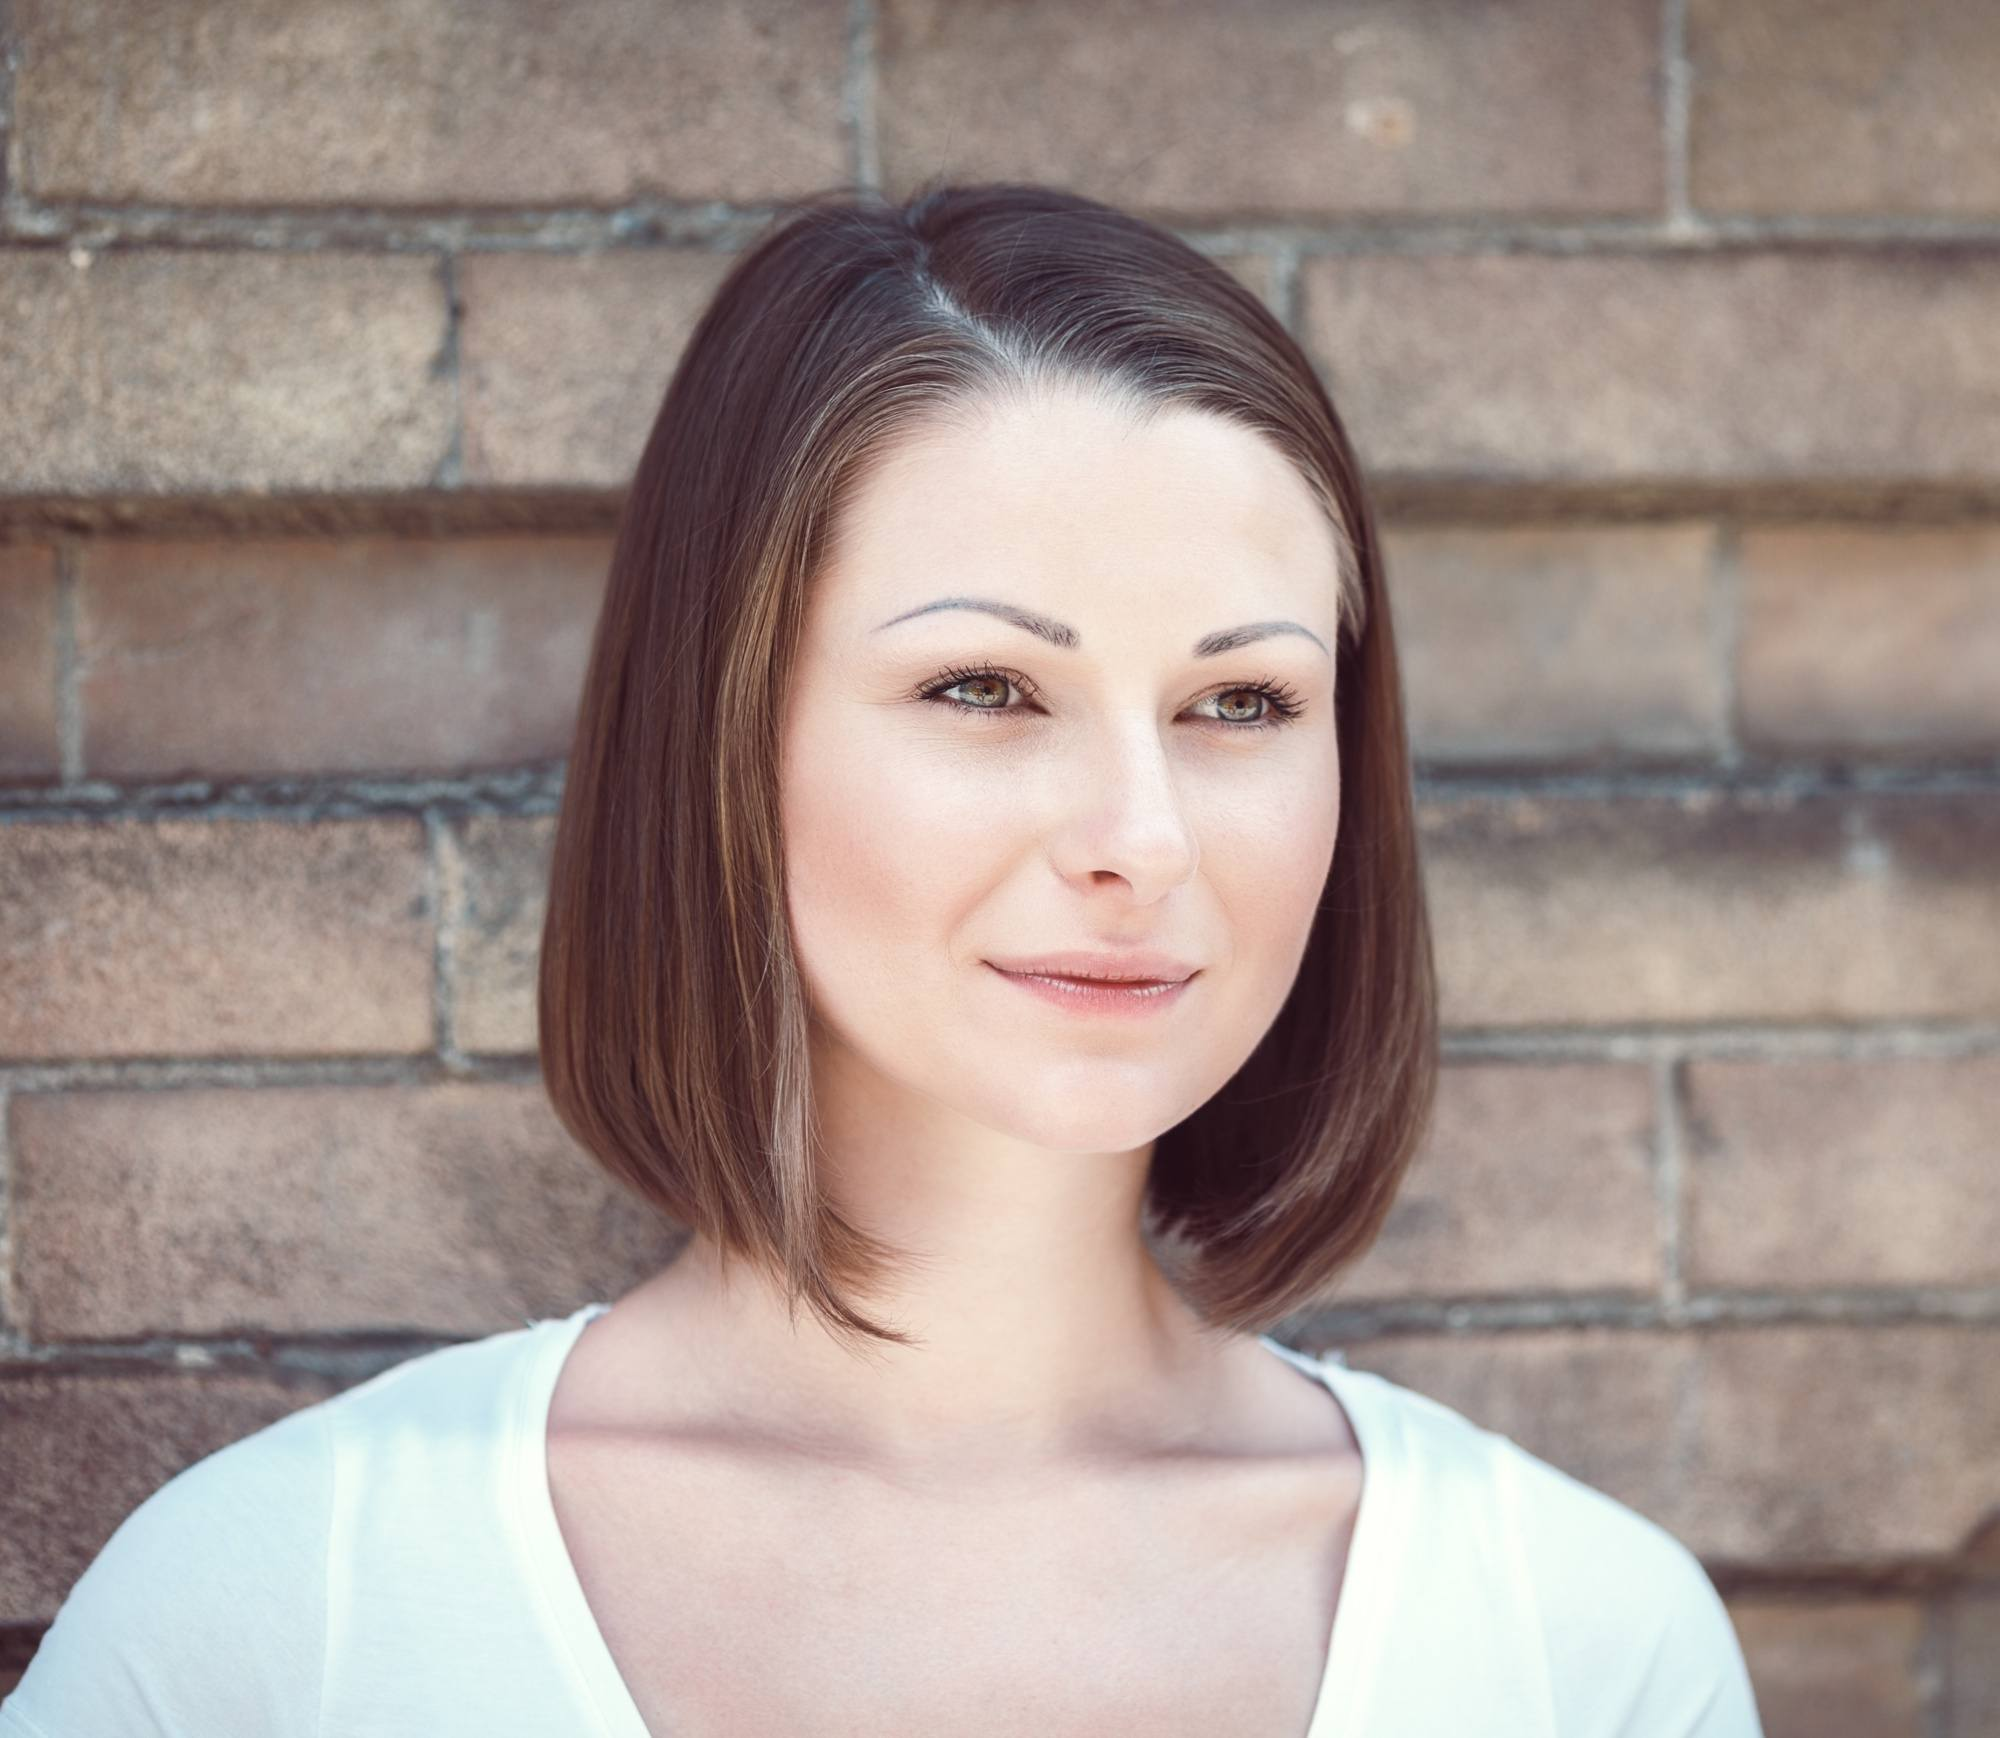 How to style a bob: Closeup shot of a woman with short dark brown hair wearing a white shirt against a wooden background